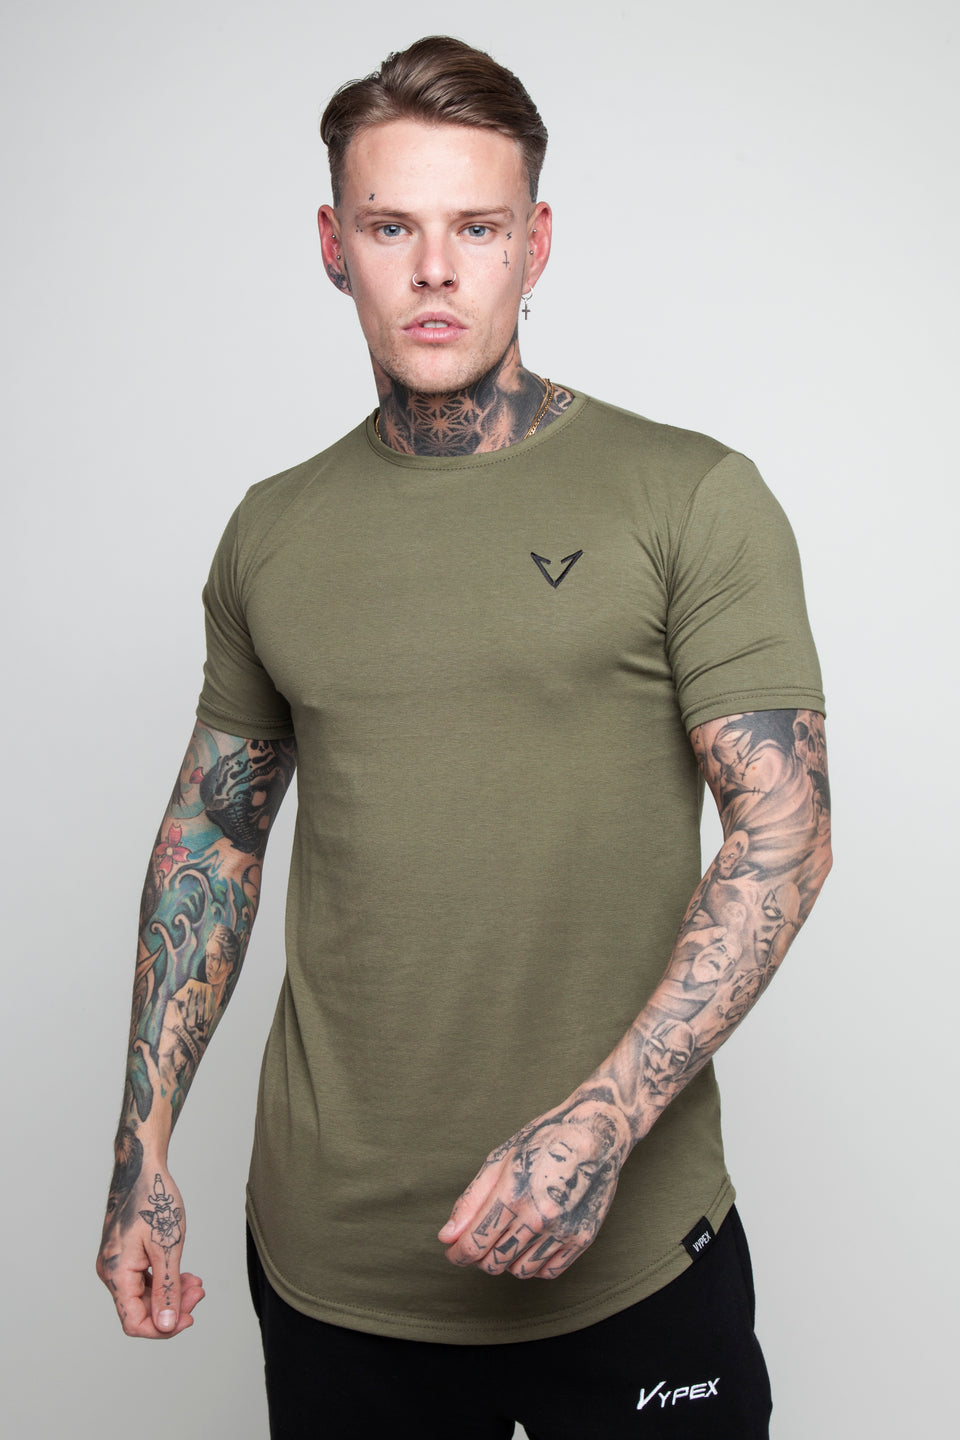 Vypex® Power Fitted Men's Gym T-Shirt In Khaki Green